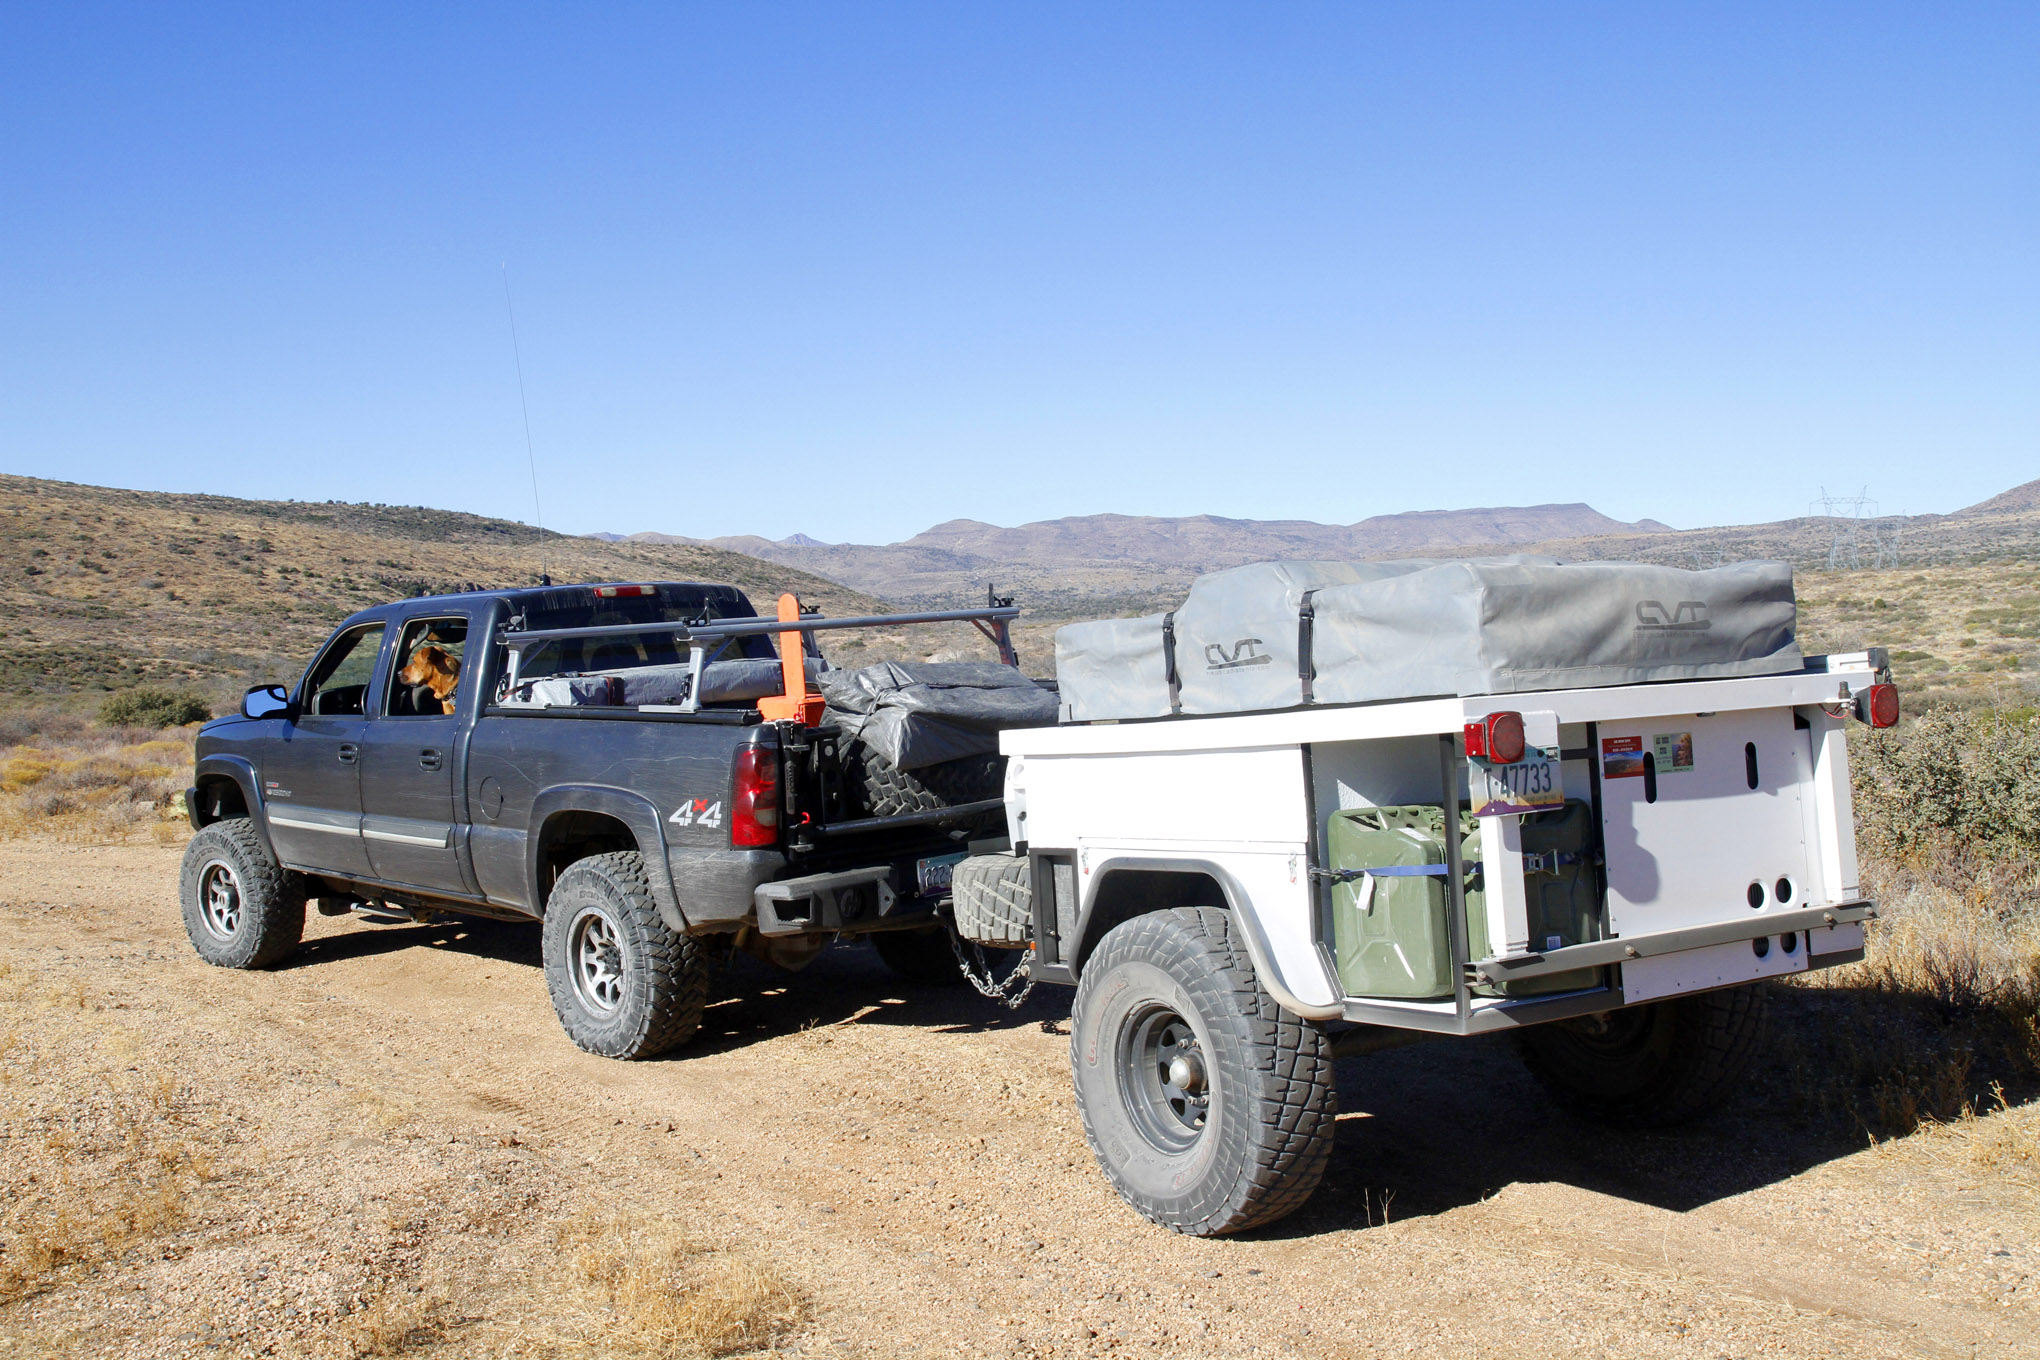 The couple also built a camp trailer to support their exploring addiction. They started from the ground up with a set of 35X12.50R15LT General Grabber tires mounted on steel wheels.